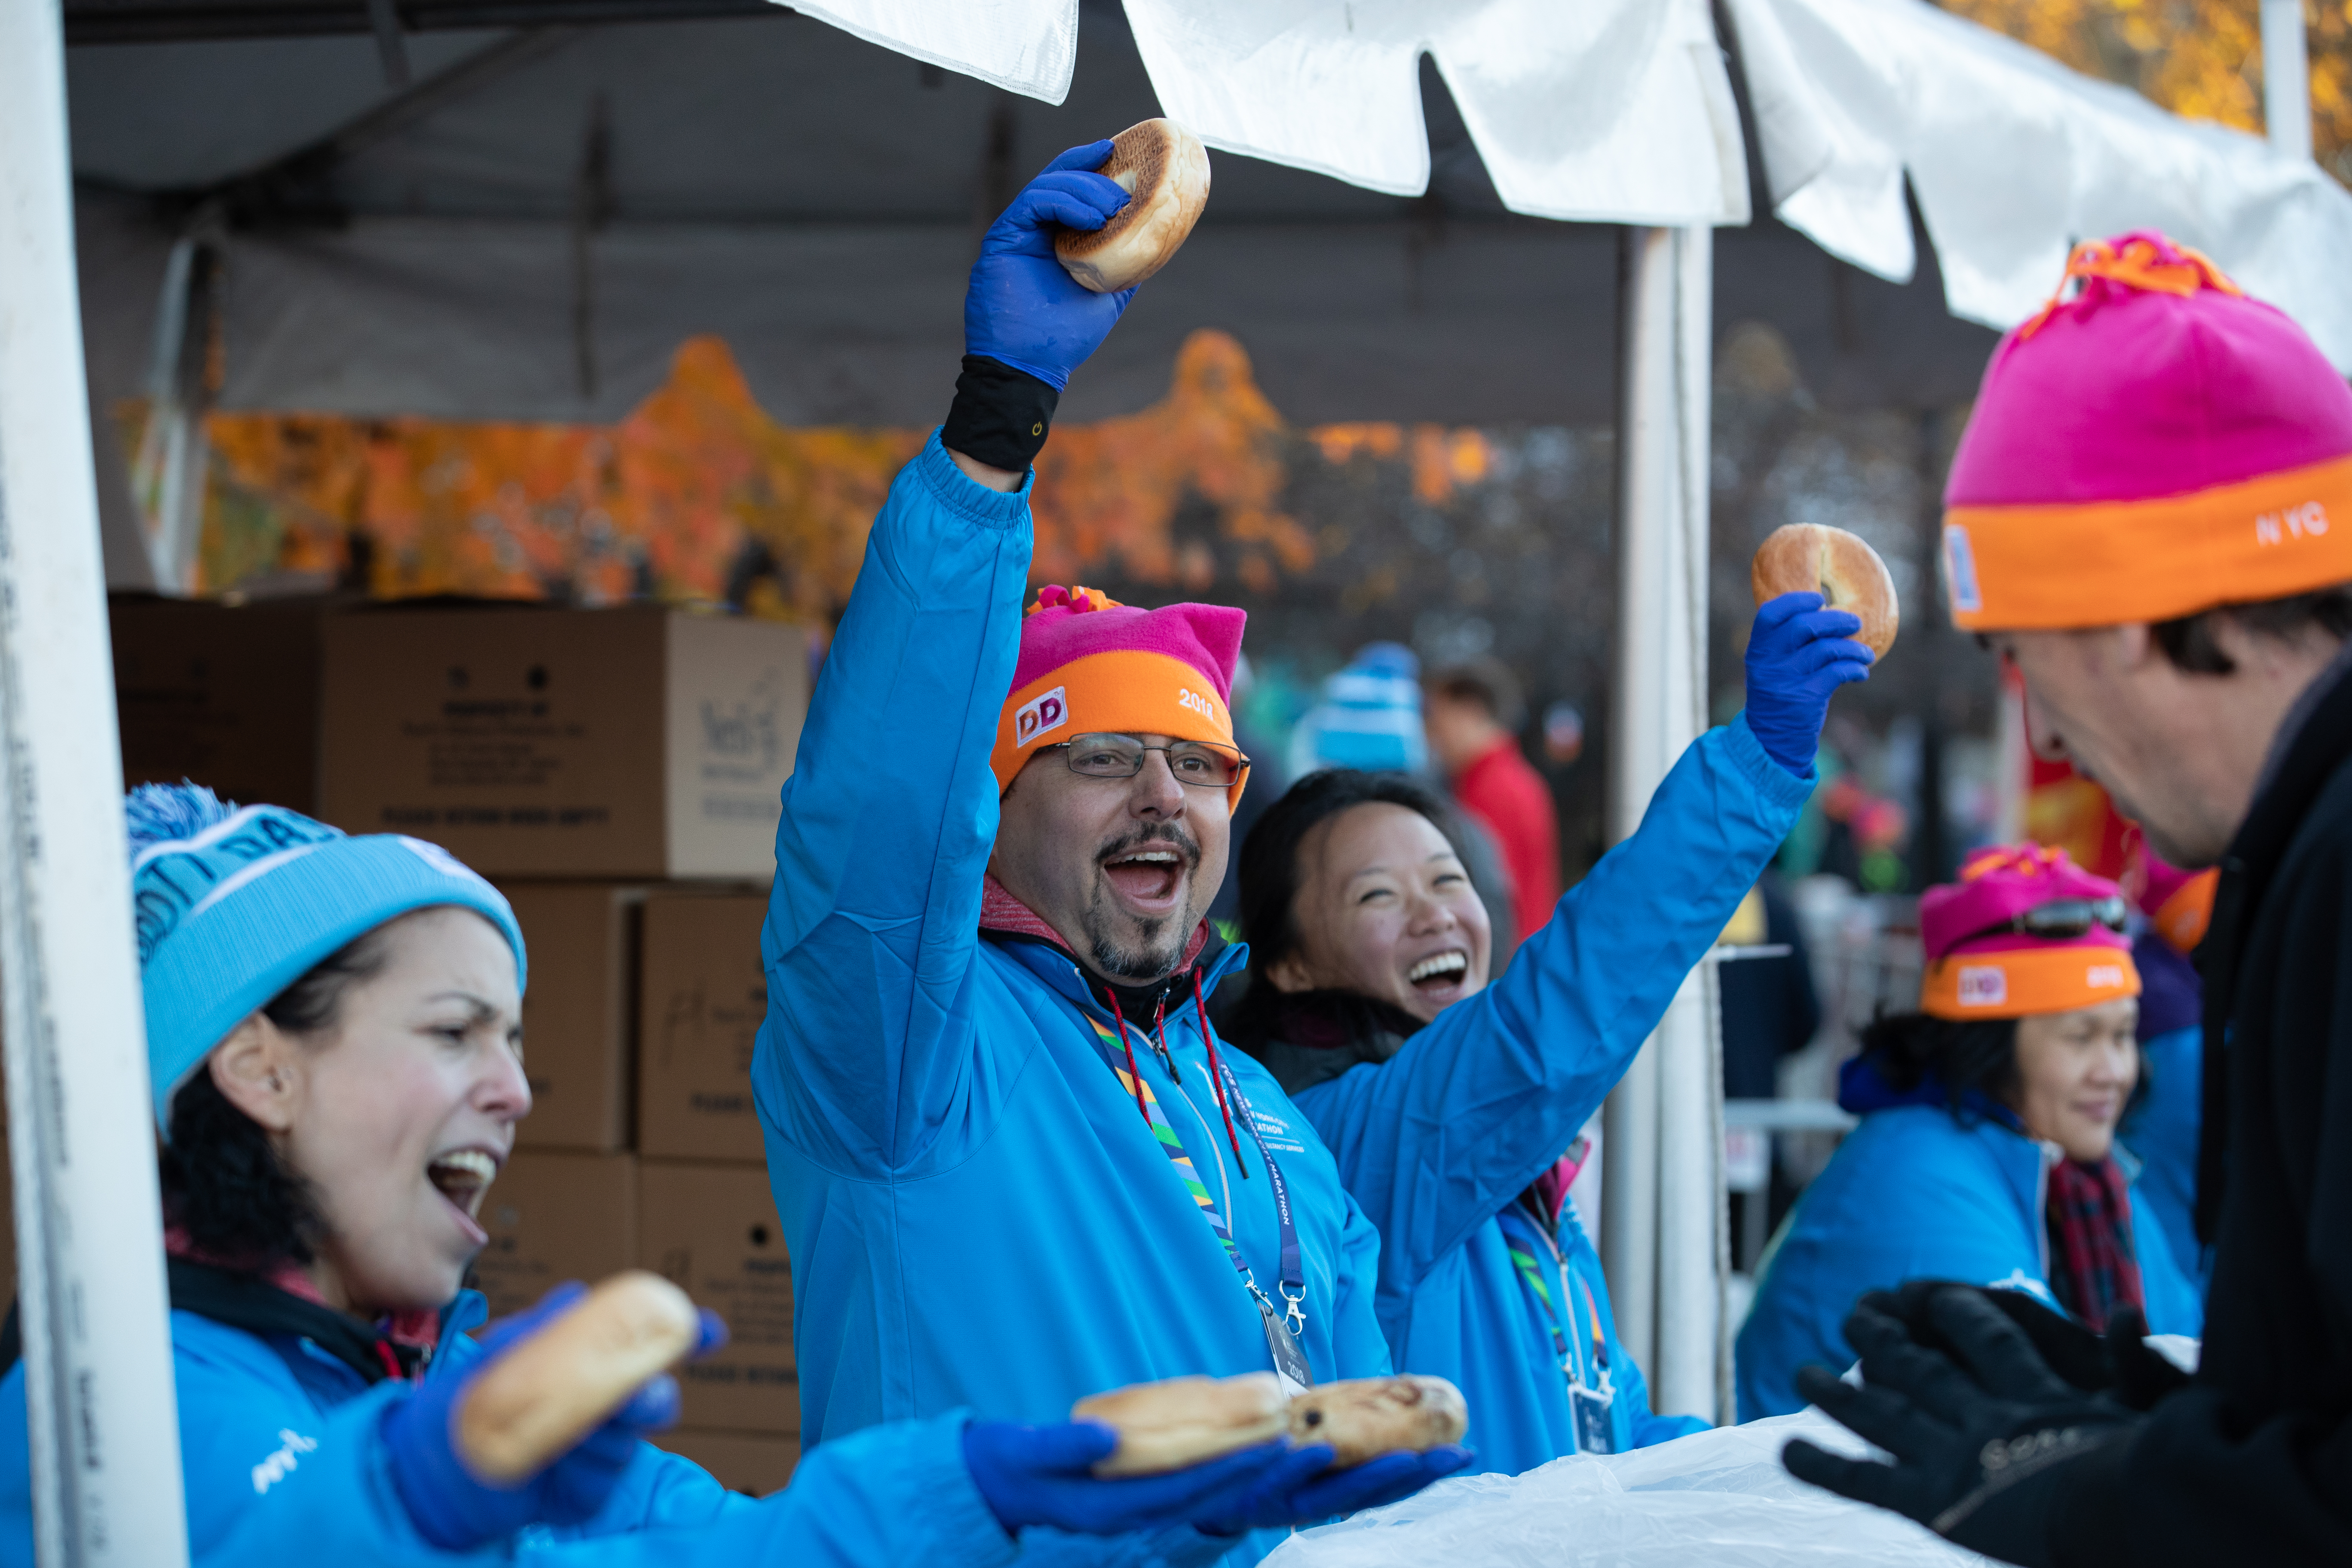 Volunteers handing out bagels at the New York City Marathon starting village